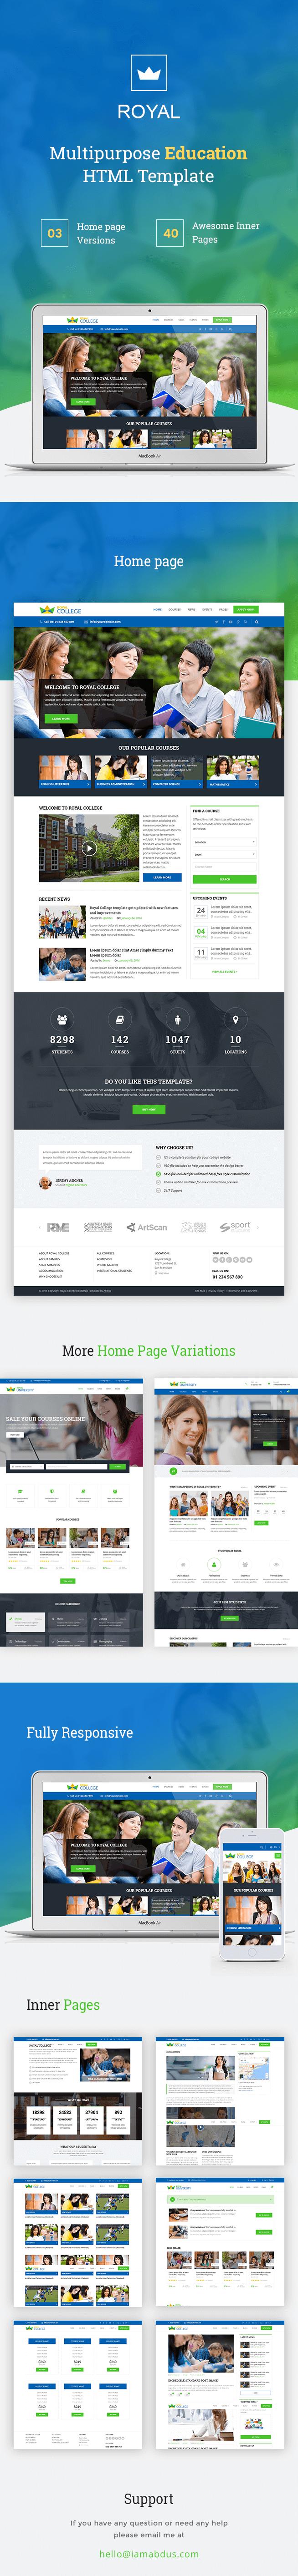 Royal - Education Bootstrap Template for College University Course